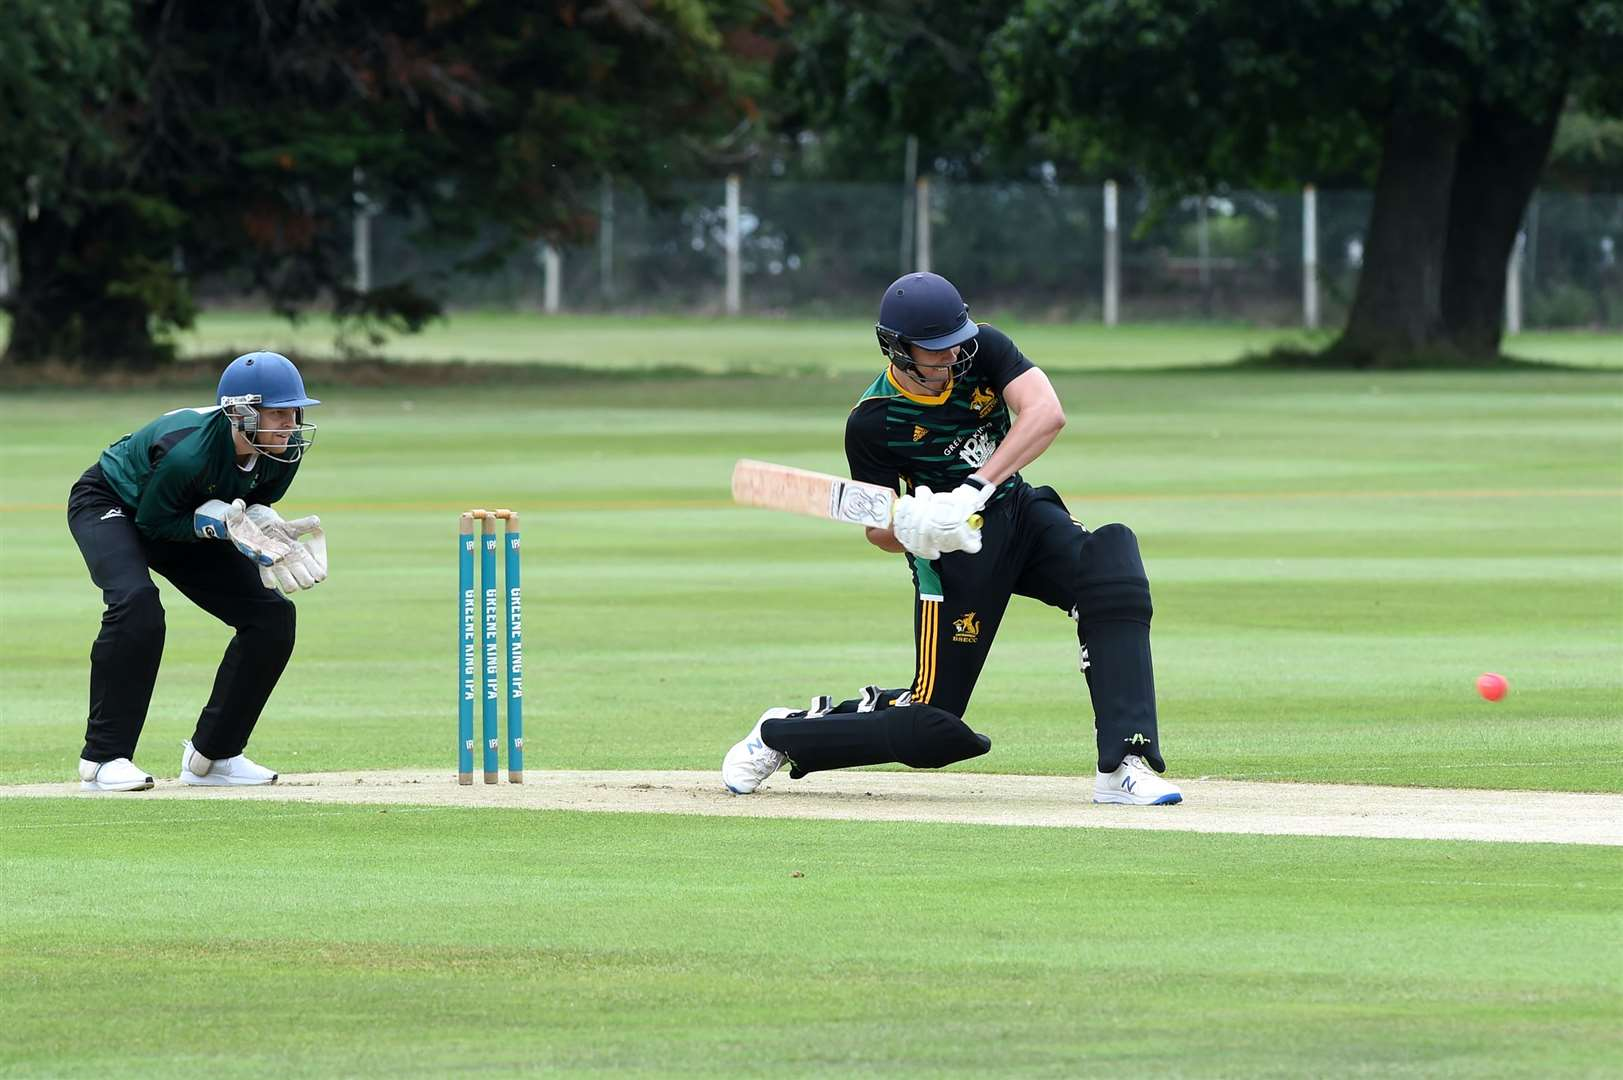 CRICKET - Bury St Edmunds (B) v Burwell & Exning (BE)..Pictured: Justin Broad batting (B)...PICTURE: Mecha Morton.... (38778582)